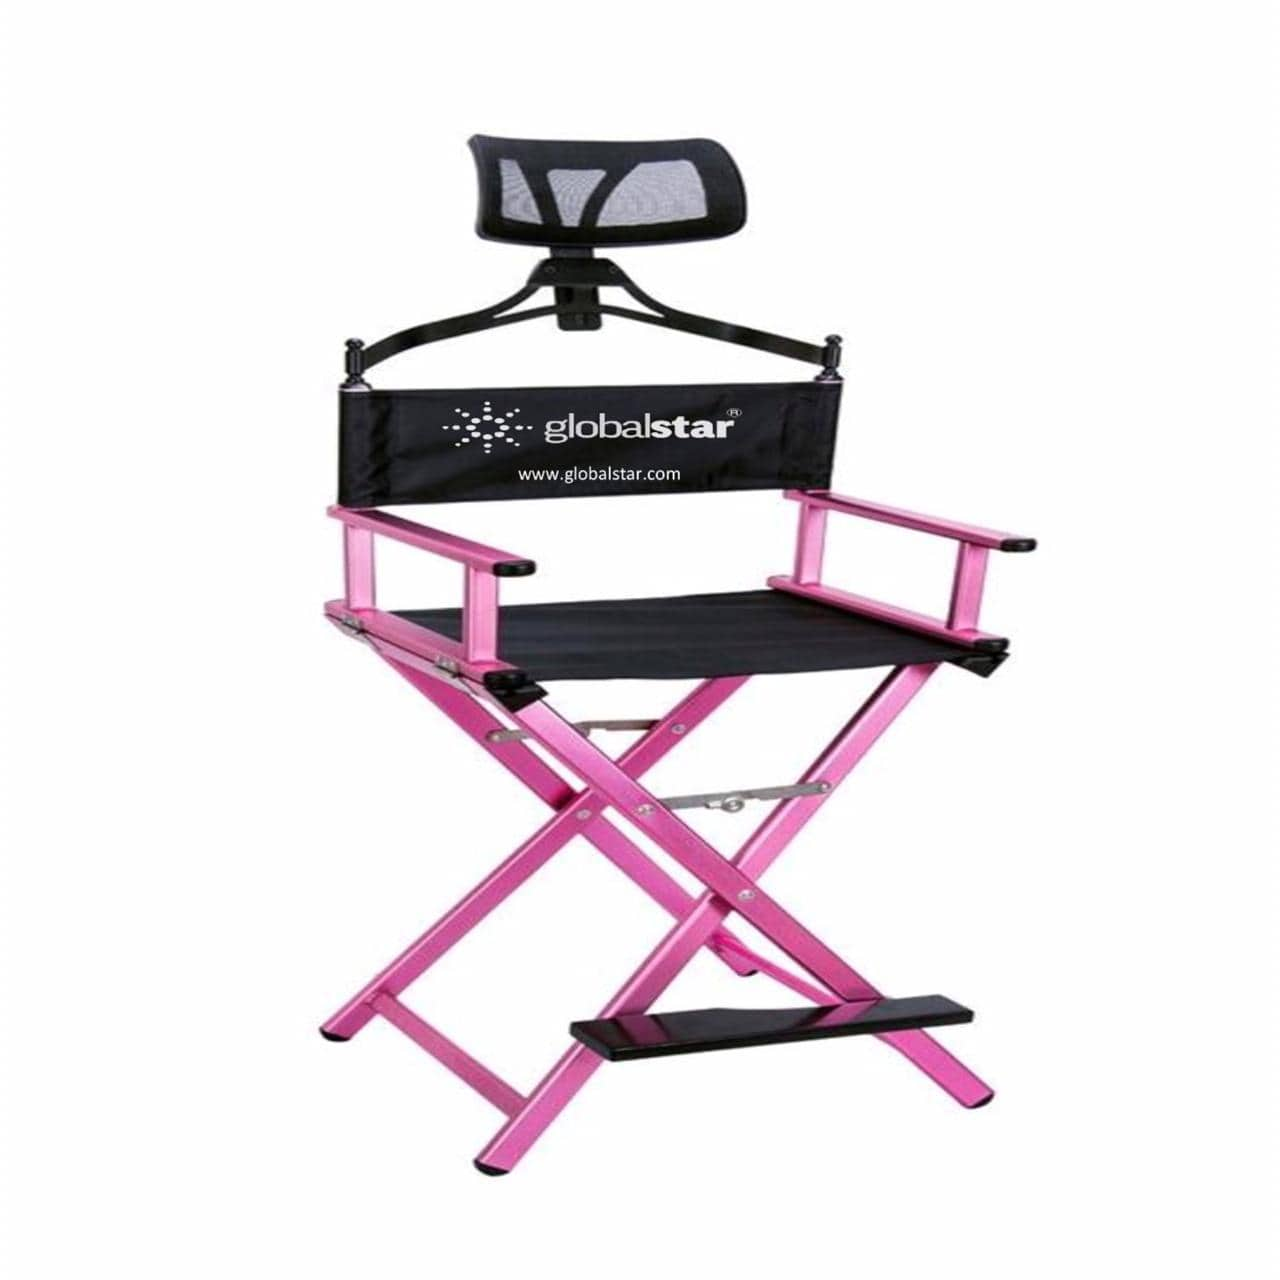 Globalstar Foldable Tall Makeup Chair With Headrest Color Pink - MY739P